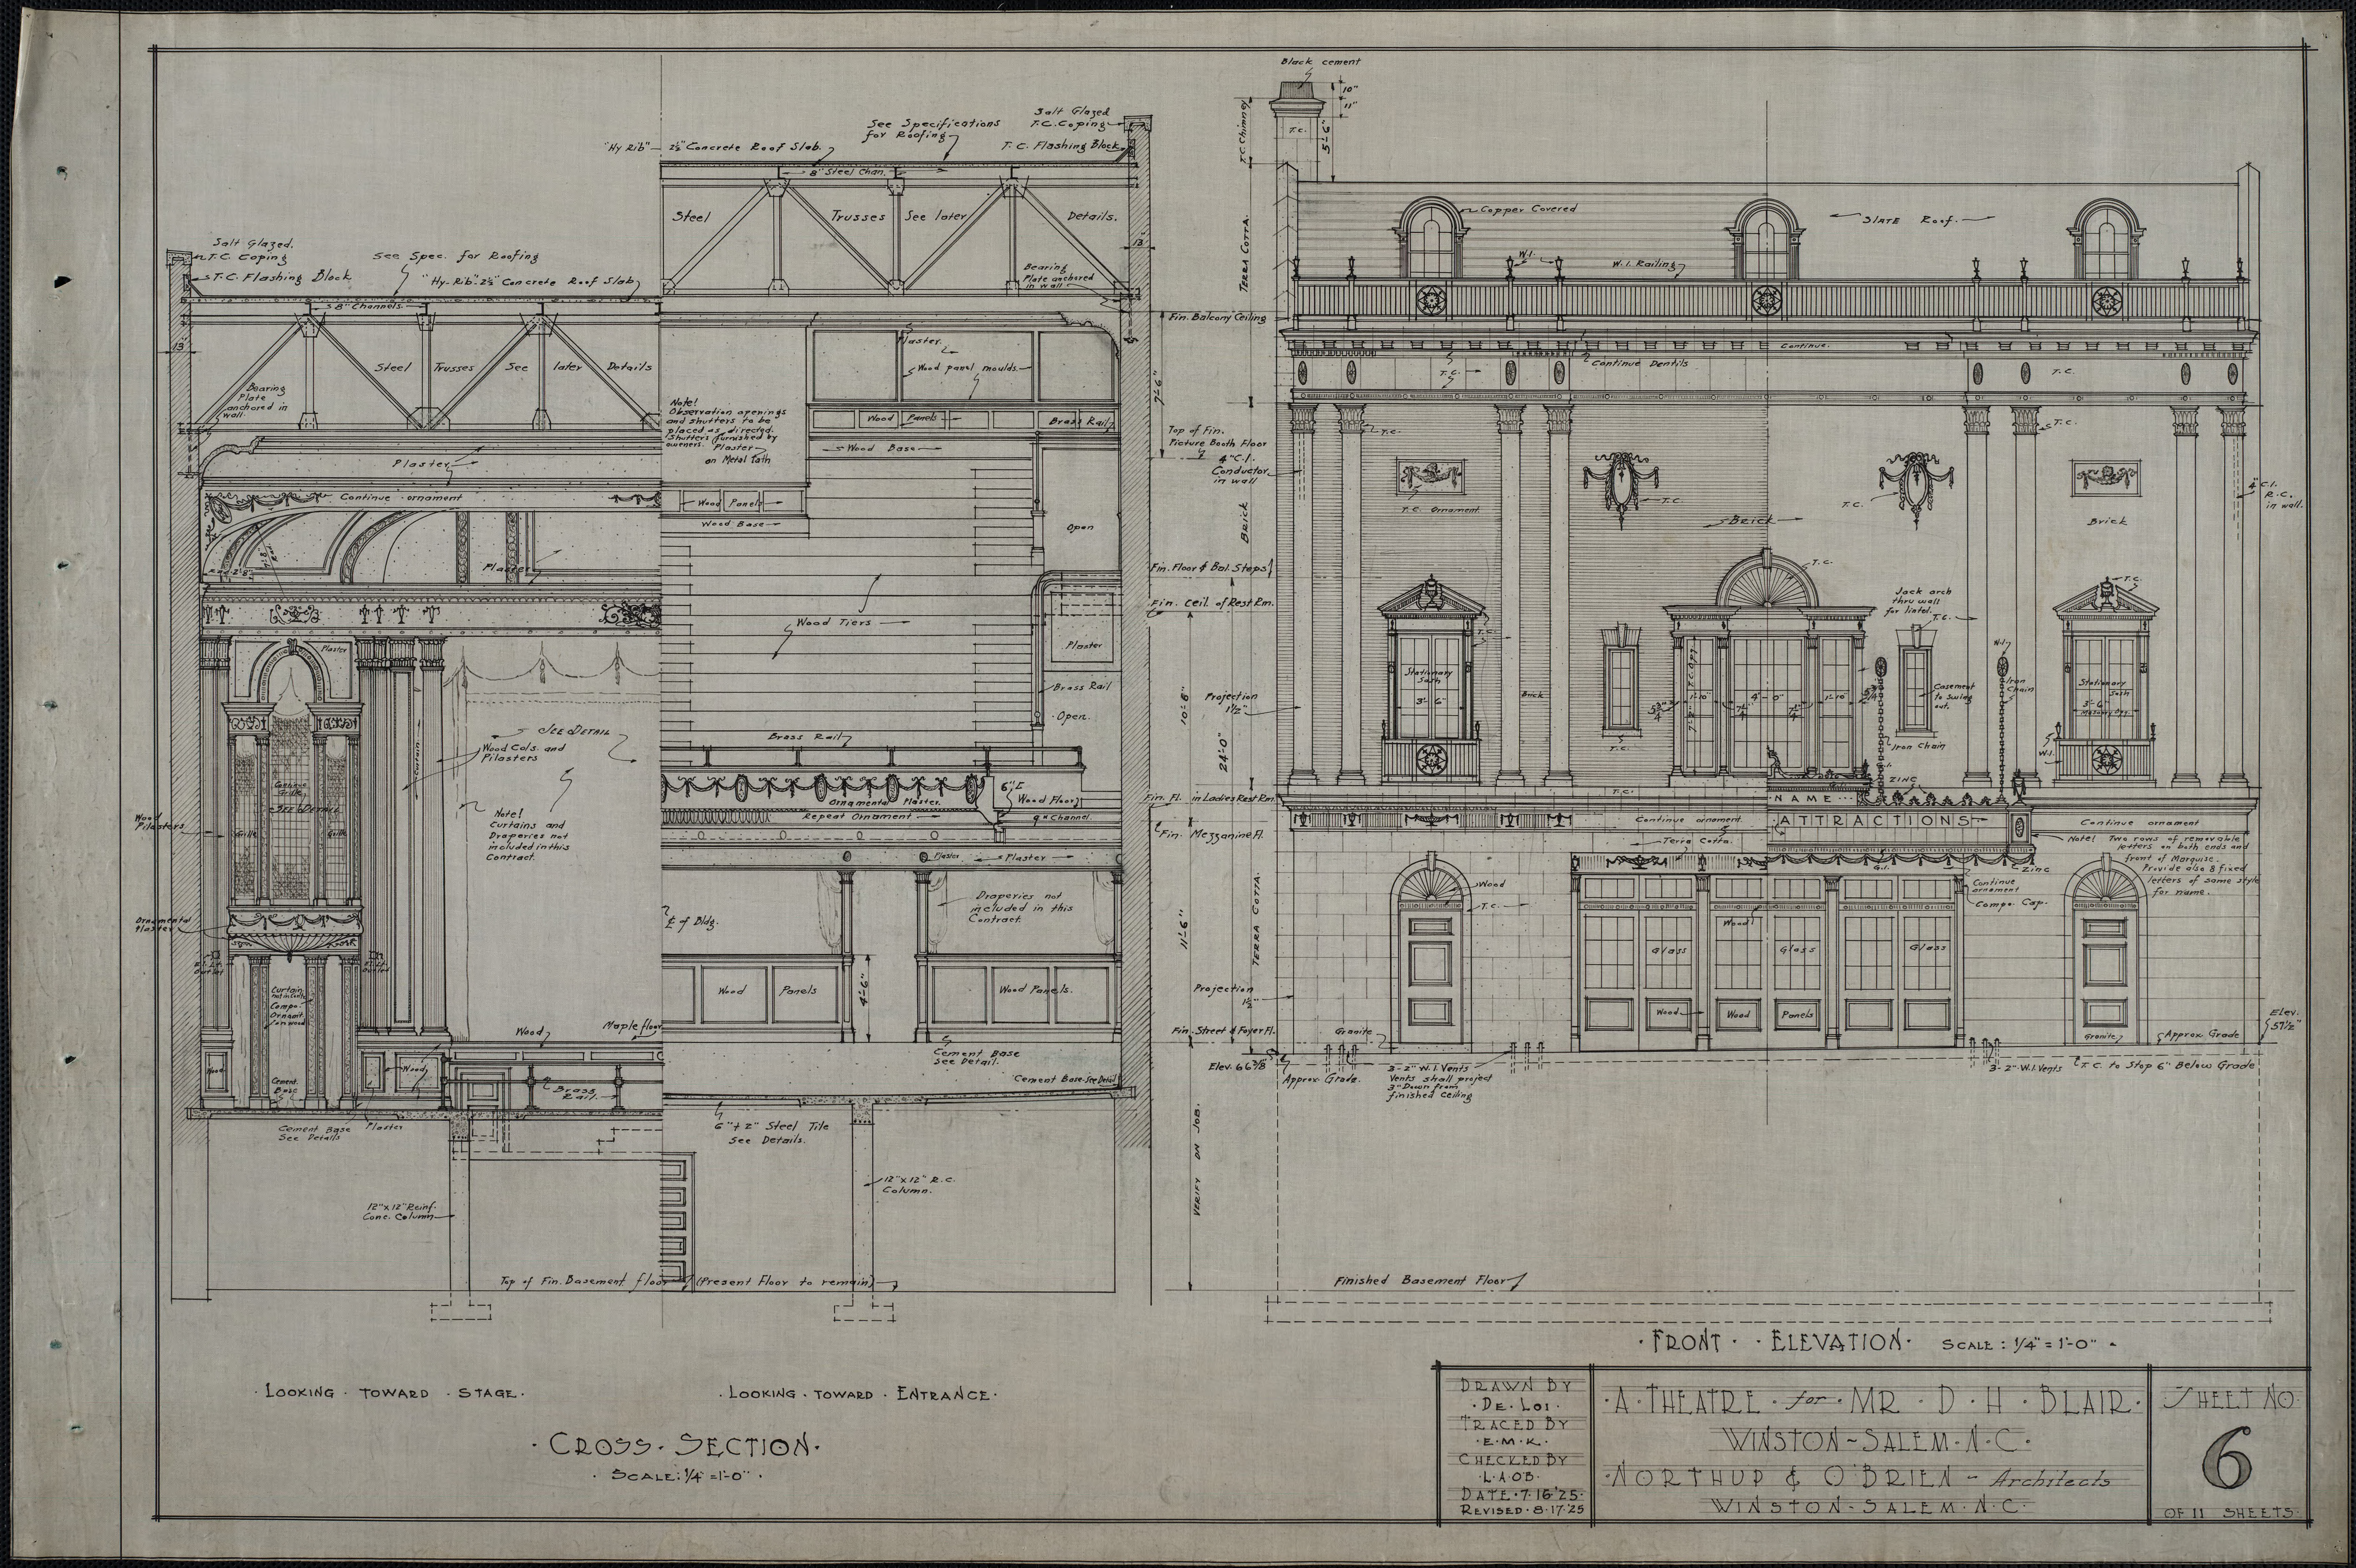 Front Elevation Definition Theatre : Cross section front elevation d h blair theatre